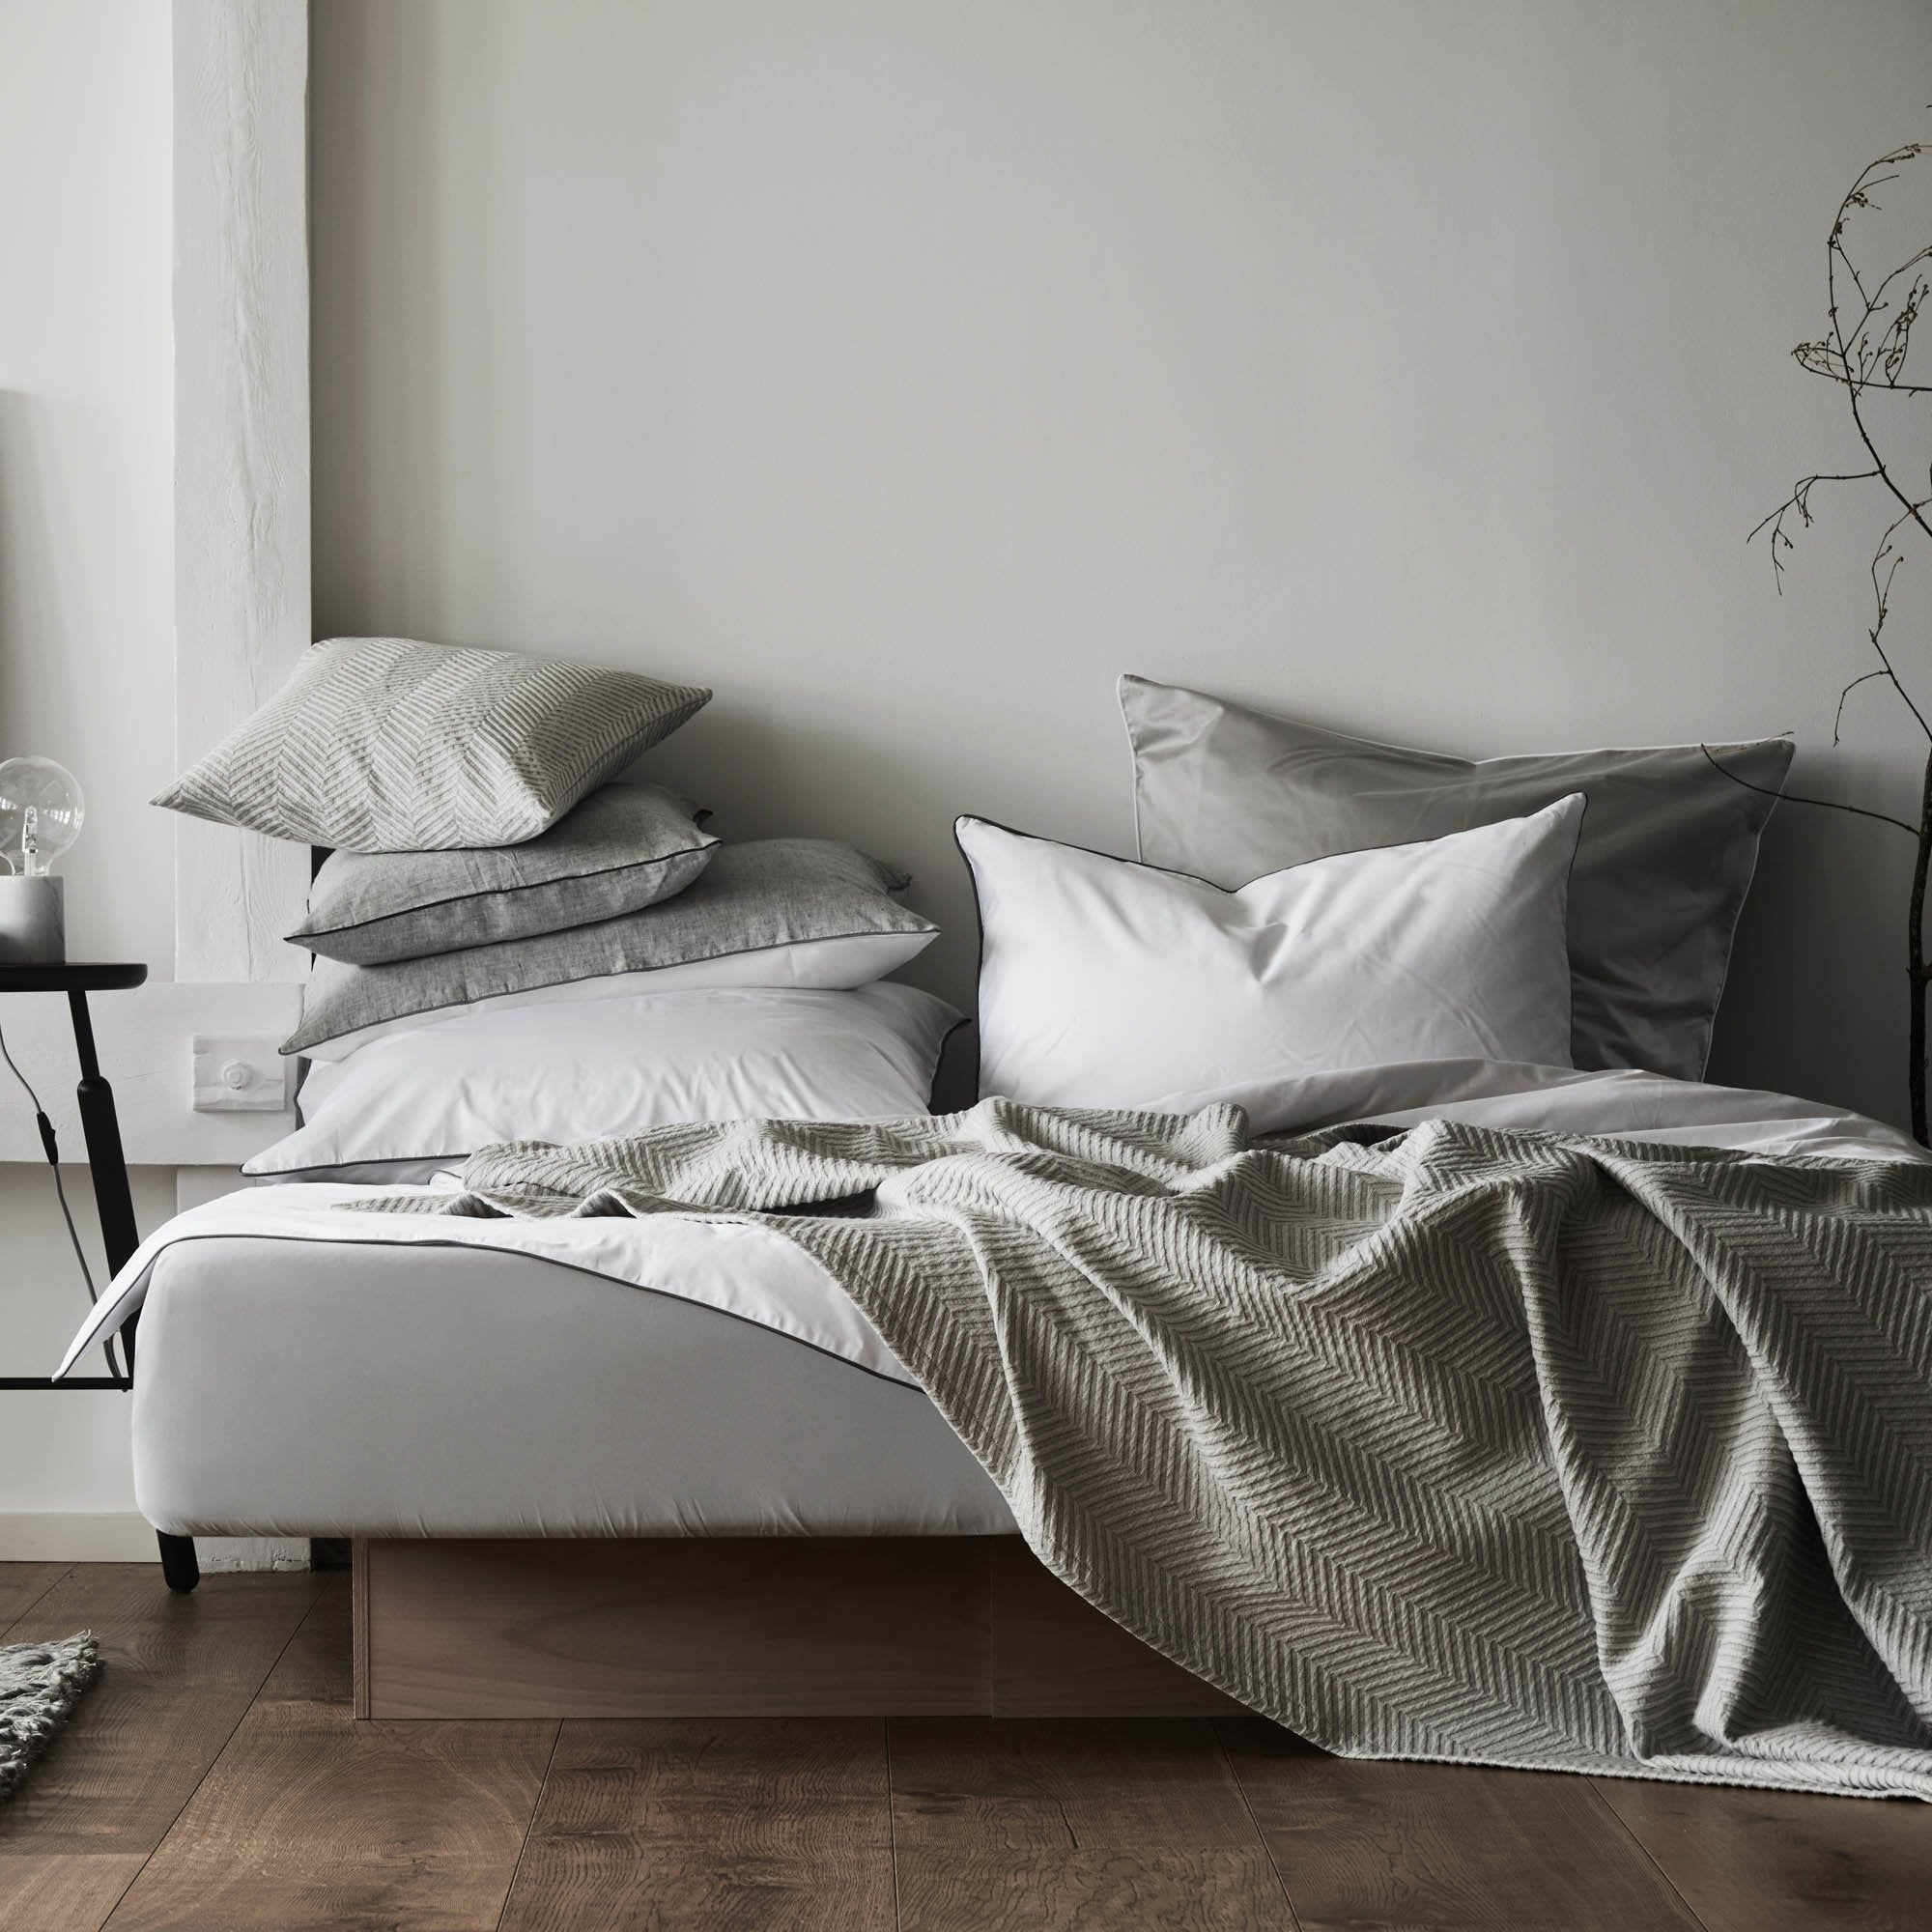 Lanton bed linen [Stone Grey/White]